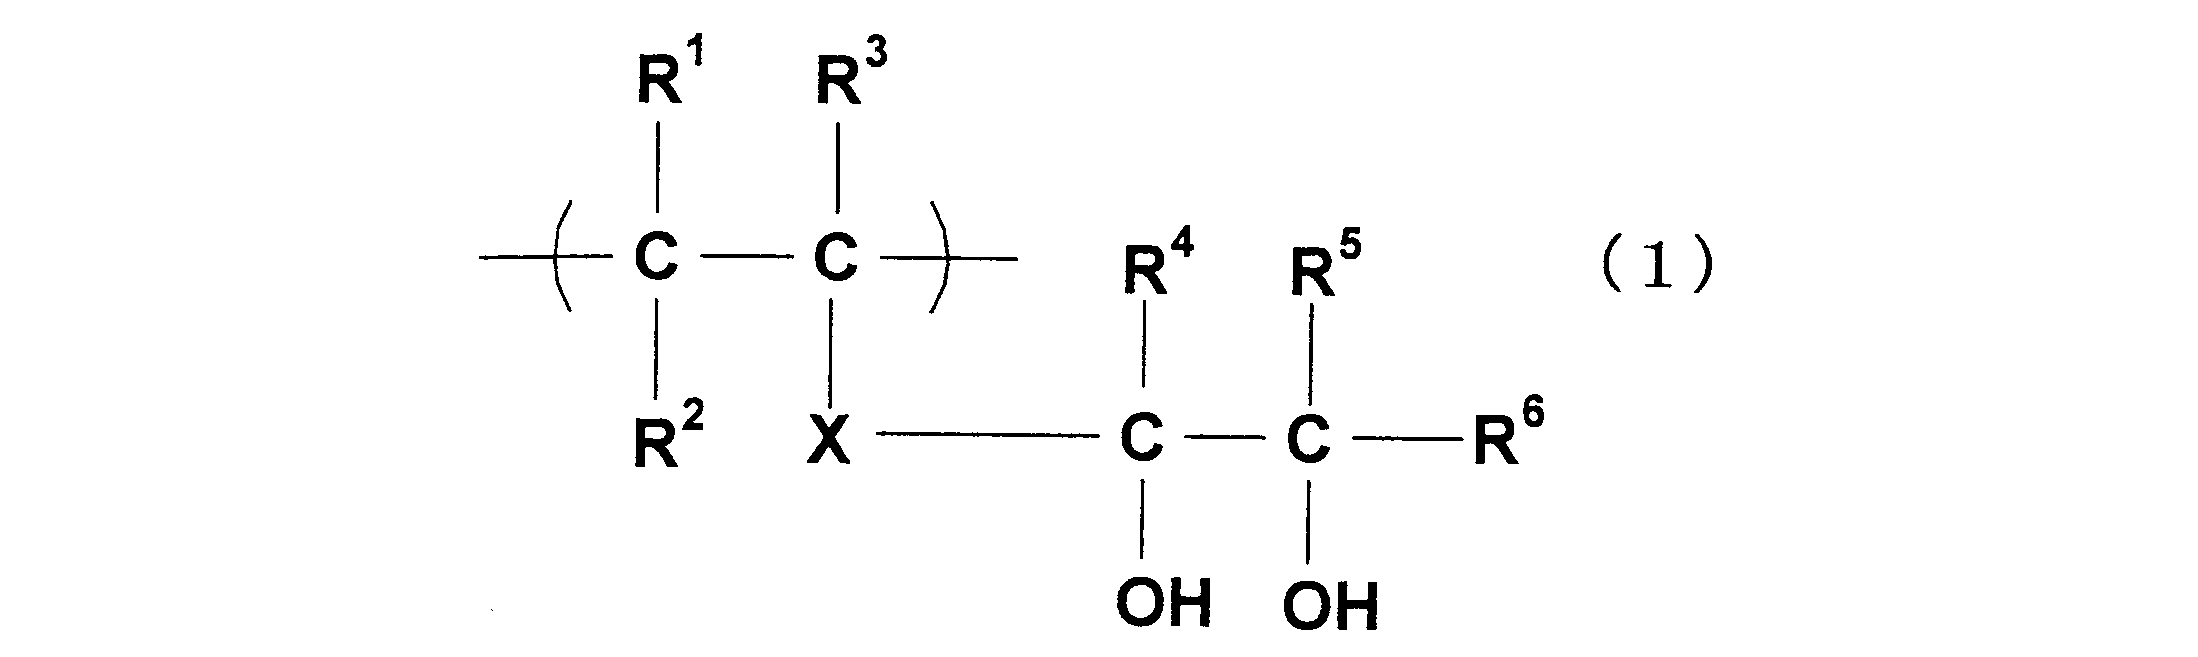 Wo2011027741a1 Resin Composition Multilayered Structure